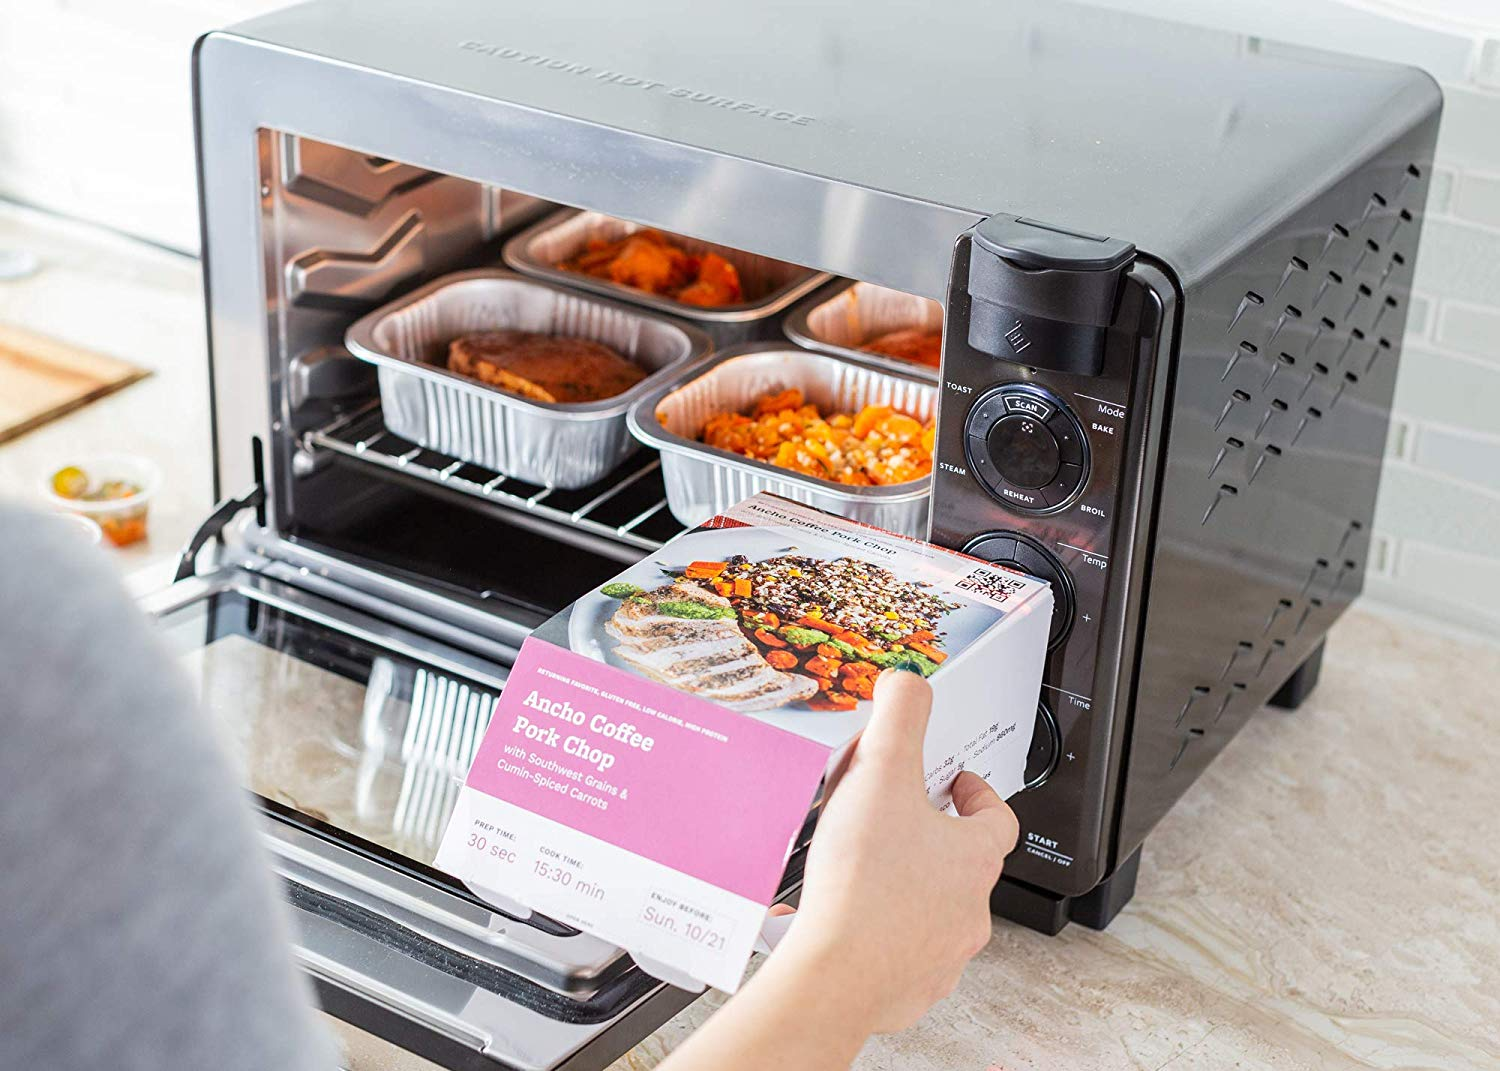 Easy Dinner Ideas for Two: Person about to cook a meal in Tovala Oven